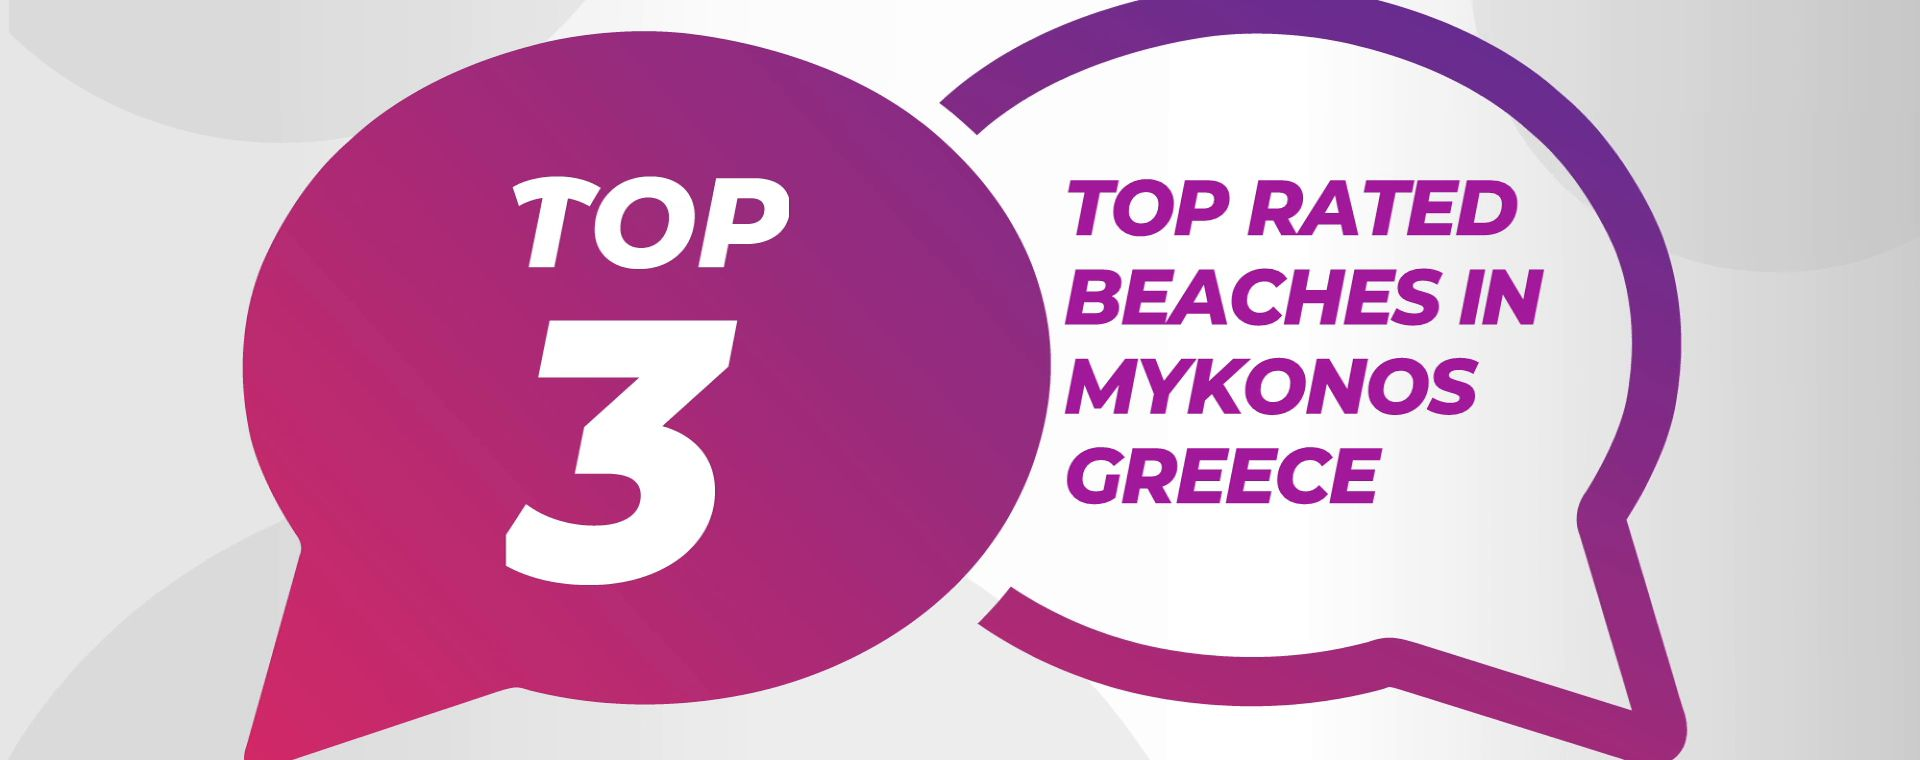 TOP RATED BEACHES IN MYKONOS